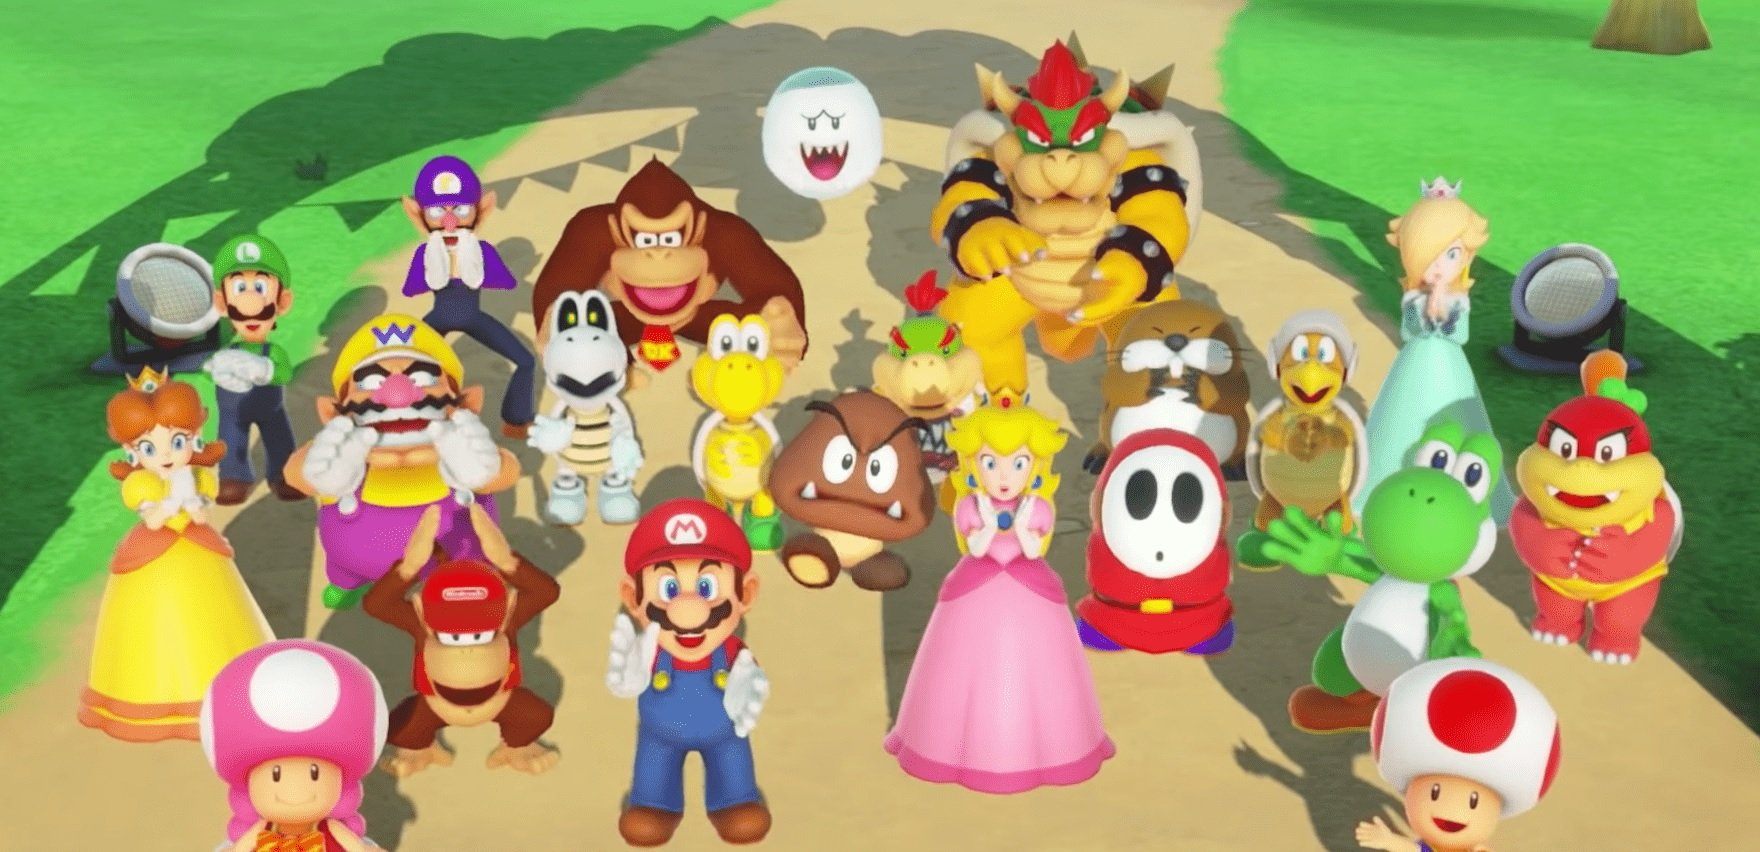 This Super Mario Party Joy-Con bundle is a great way to start the party screenshot